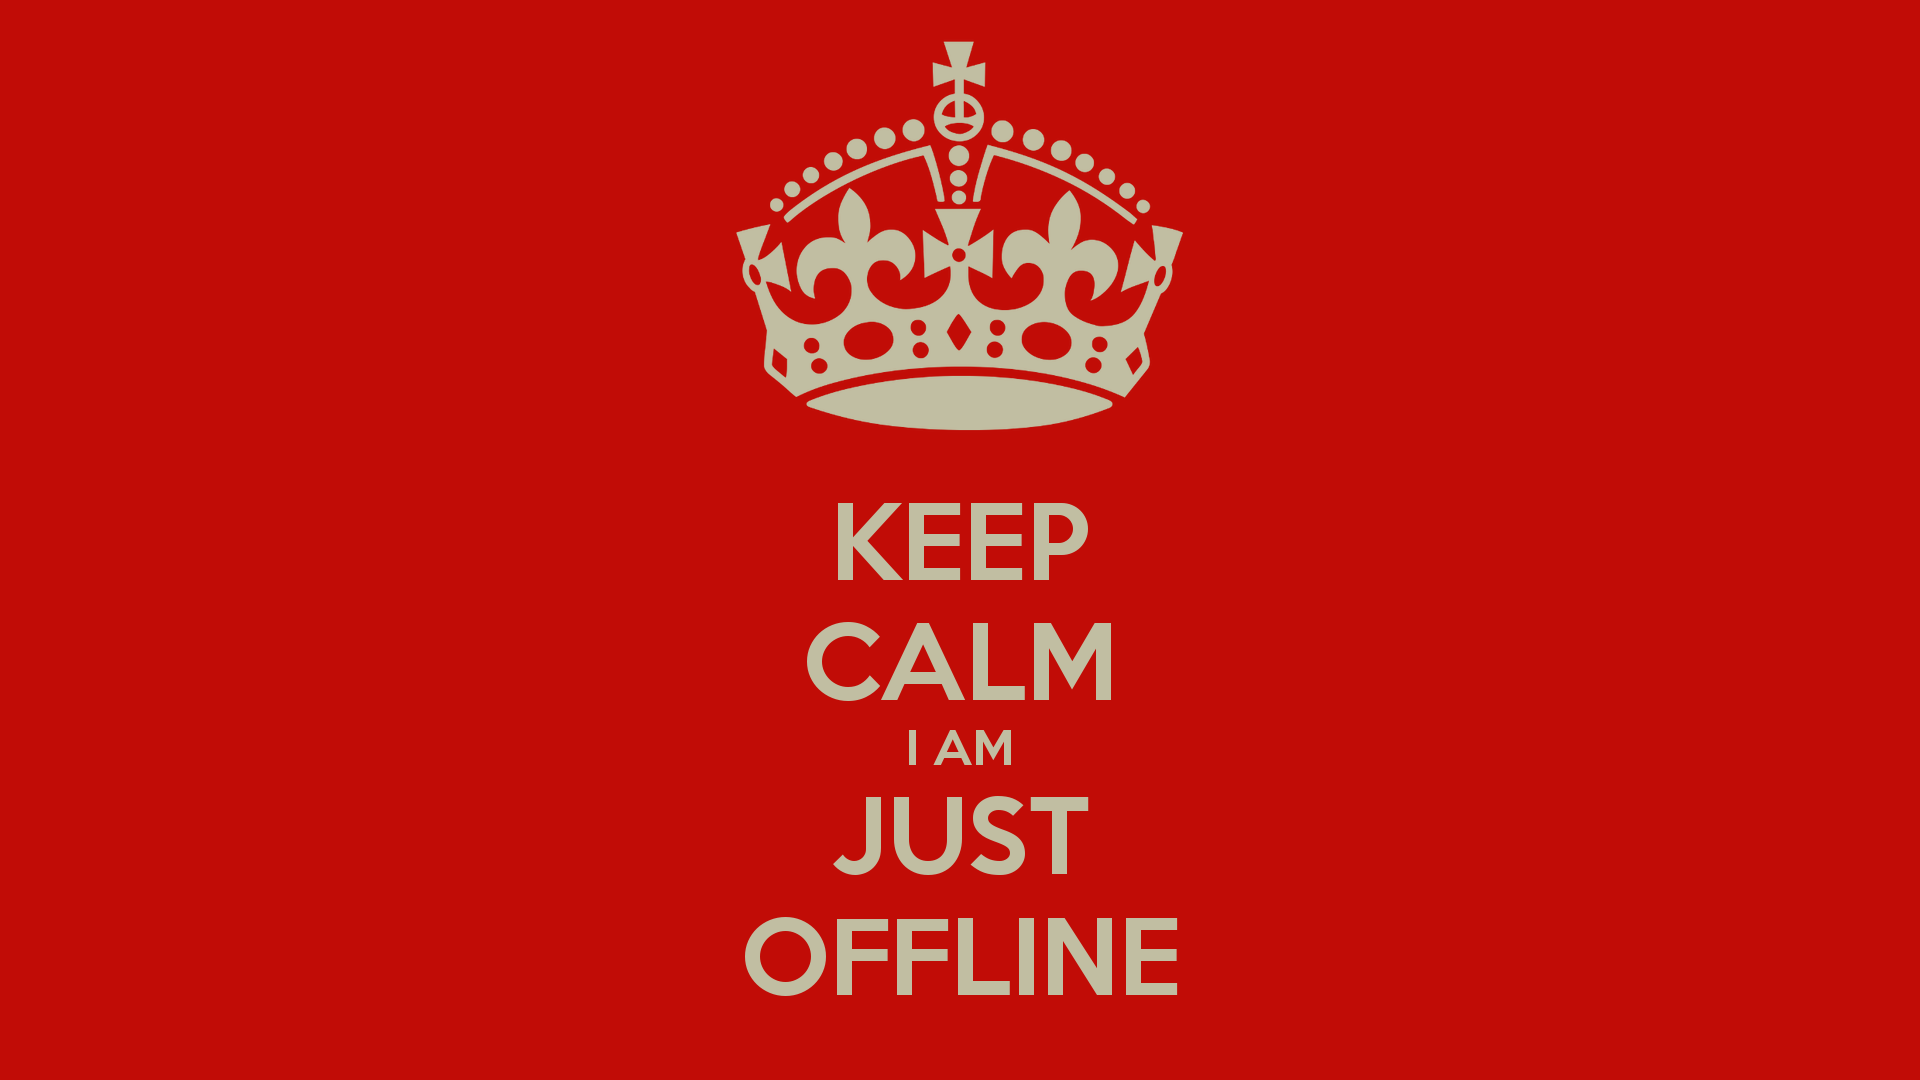 KEEP CALM I AM JUST OFFLINE   KEEP CALM AND CARRY ON Image Generator 1920x1080